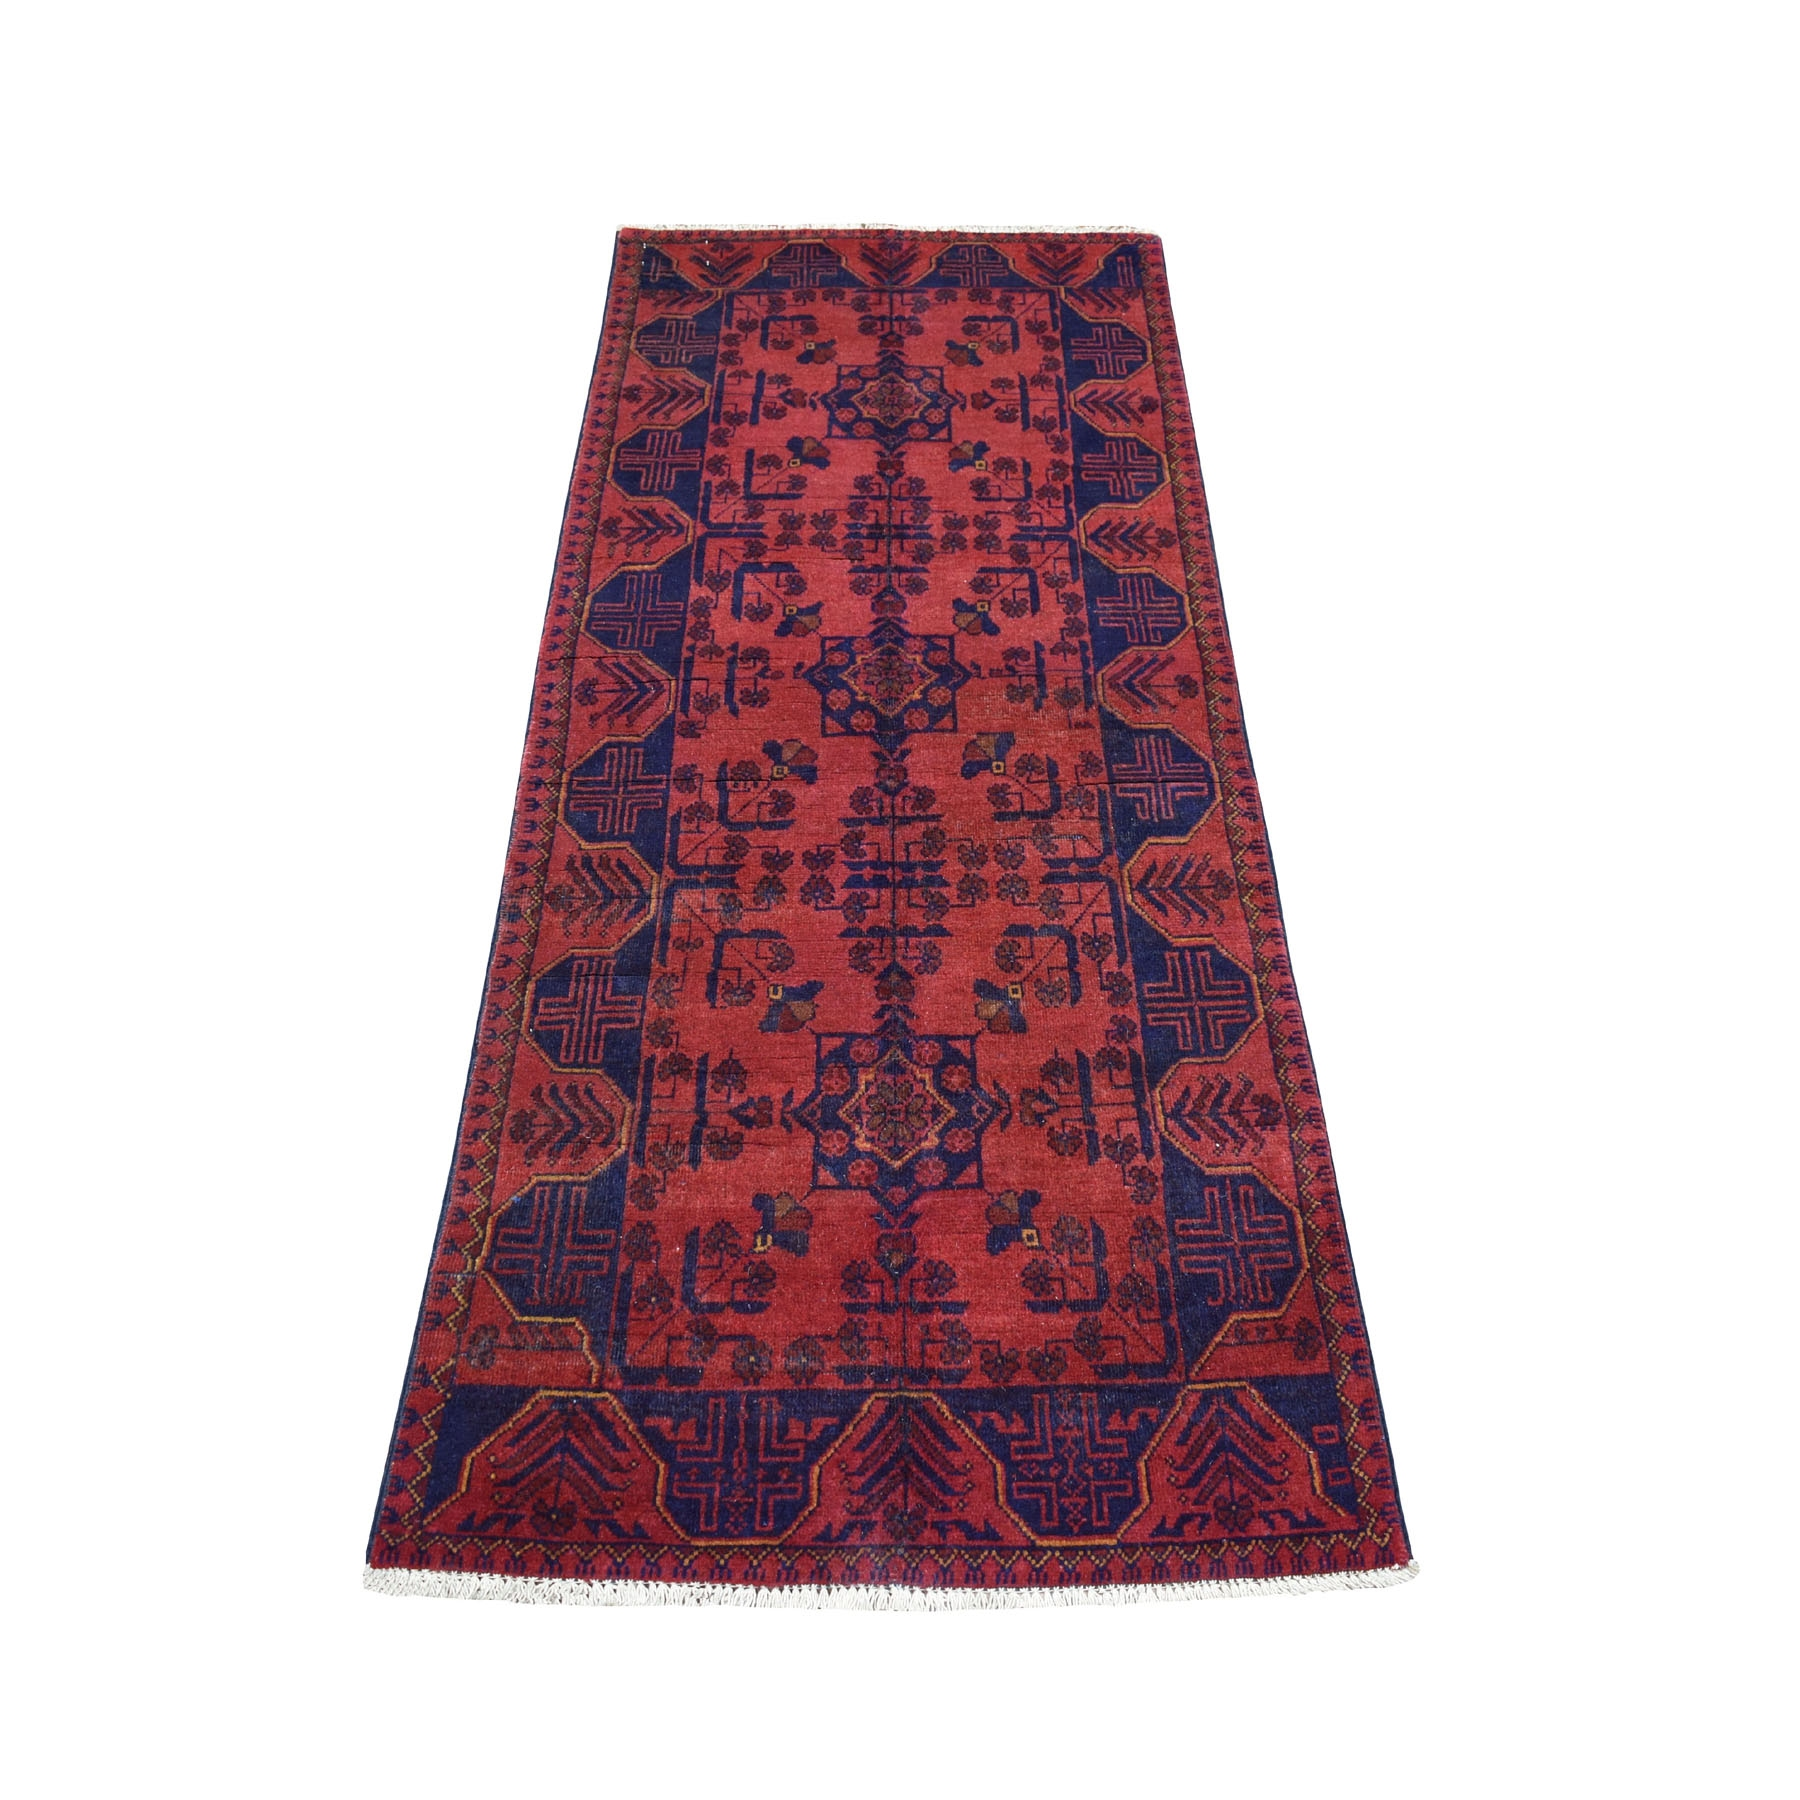 """2'7""""x6'4"""" Deep and Saturated Red Geometric Afghan Andkhoy Runner Pure Wool Hand Knotted Oriental Rug"""